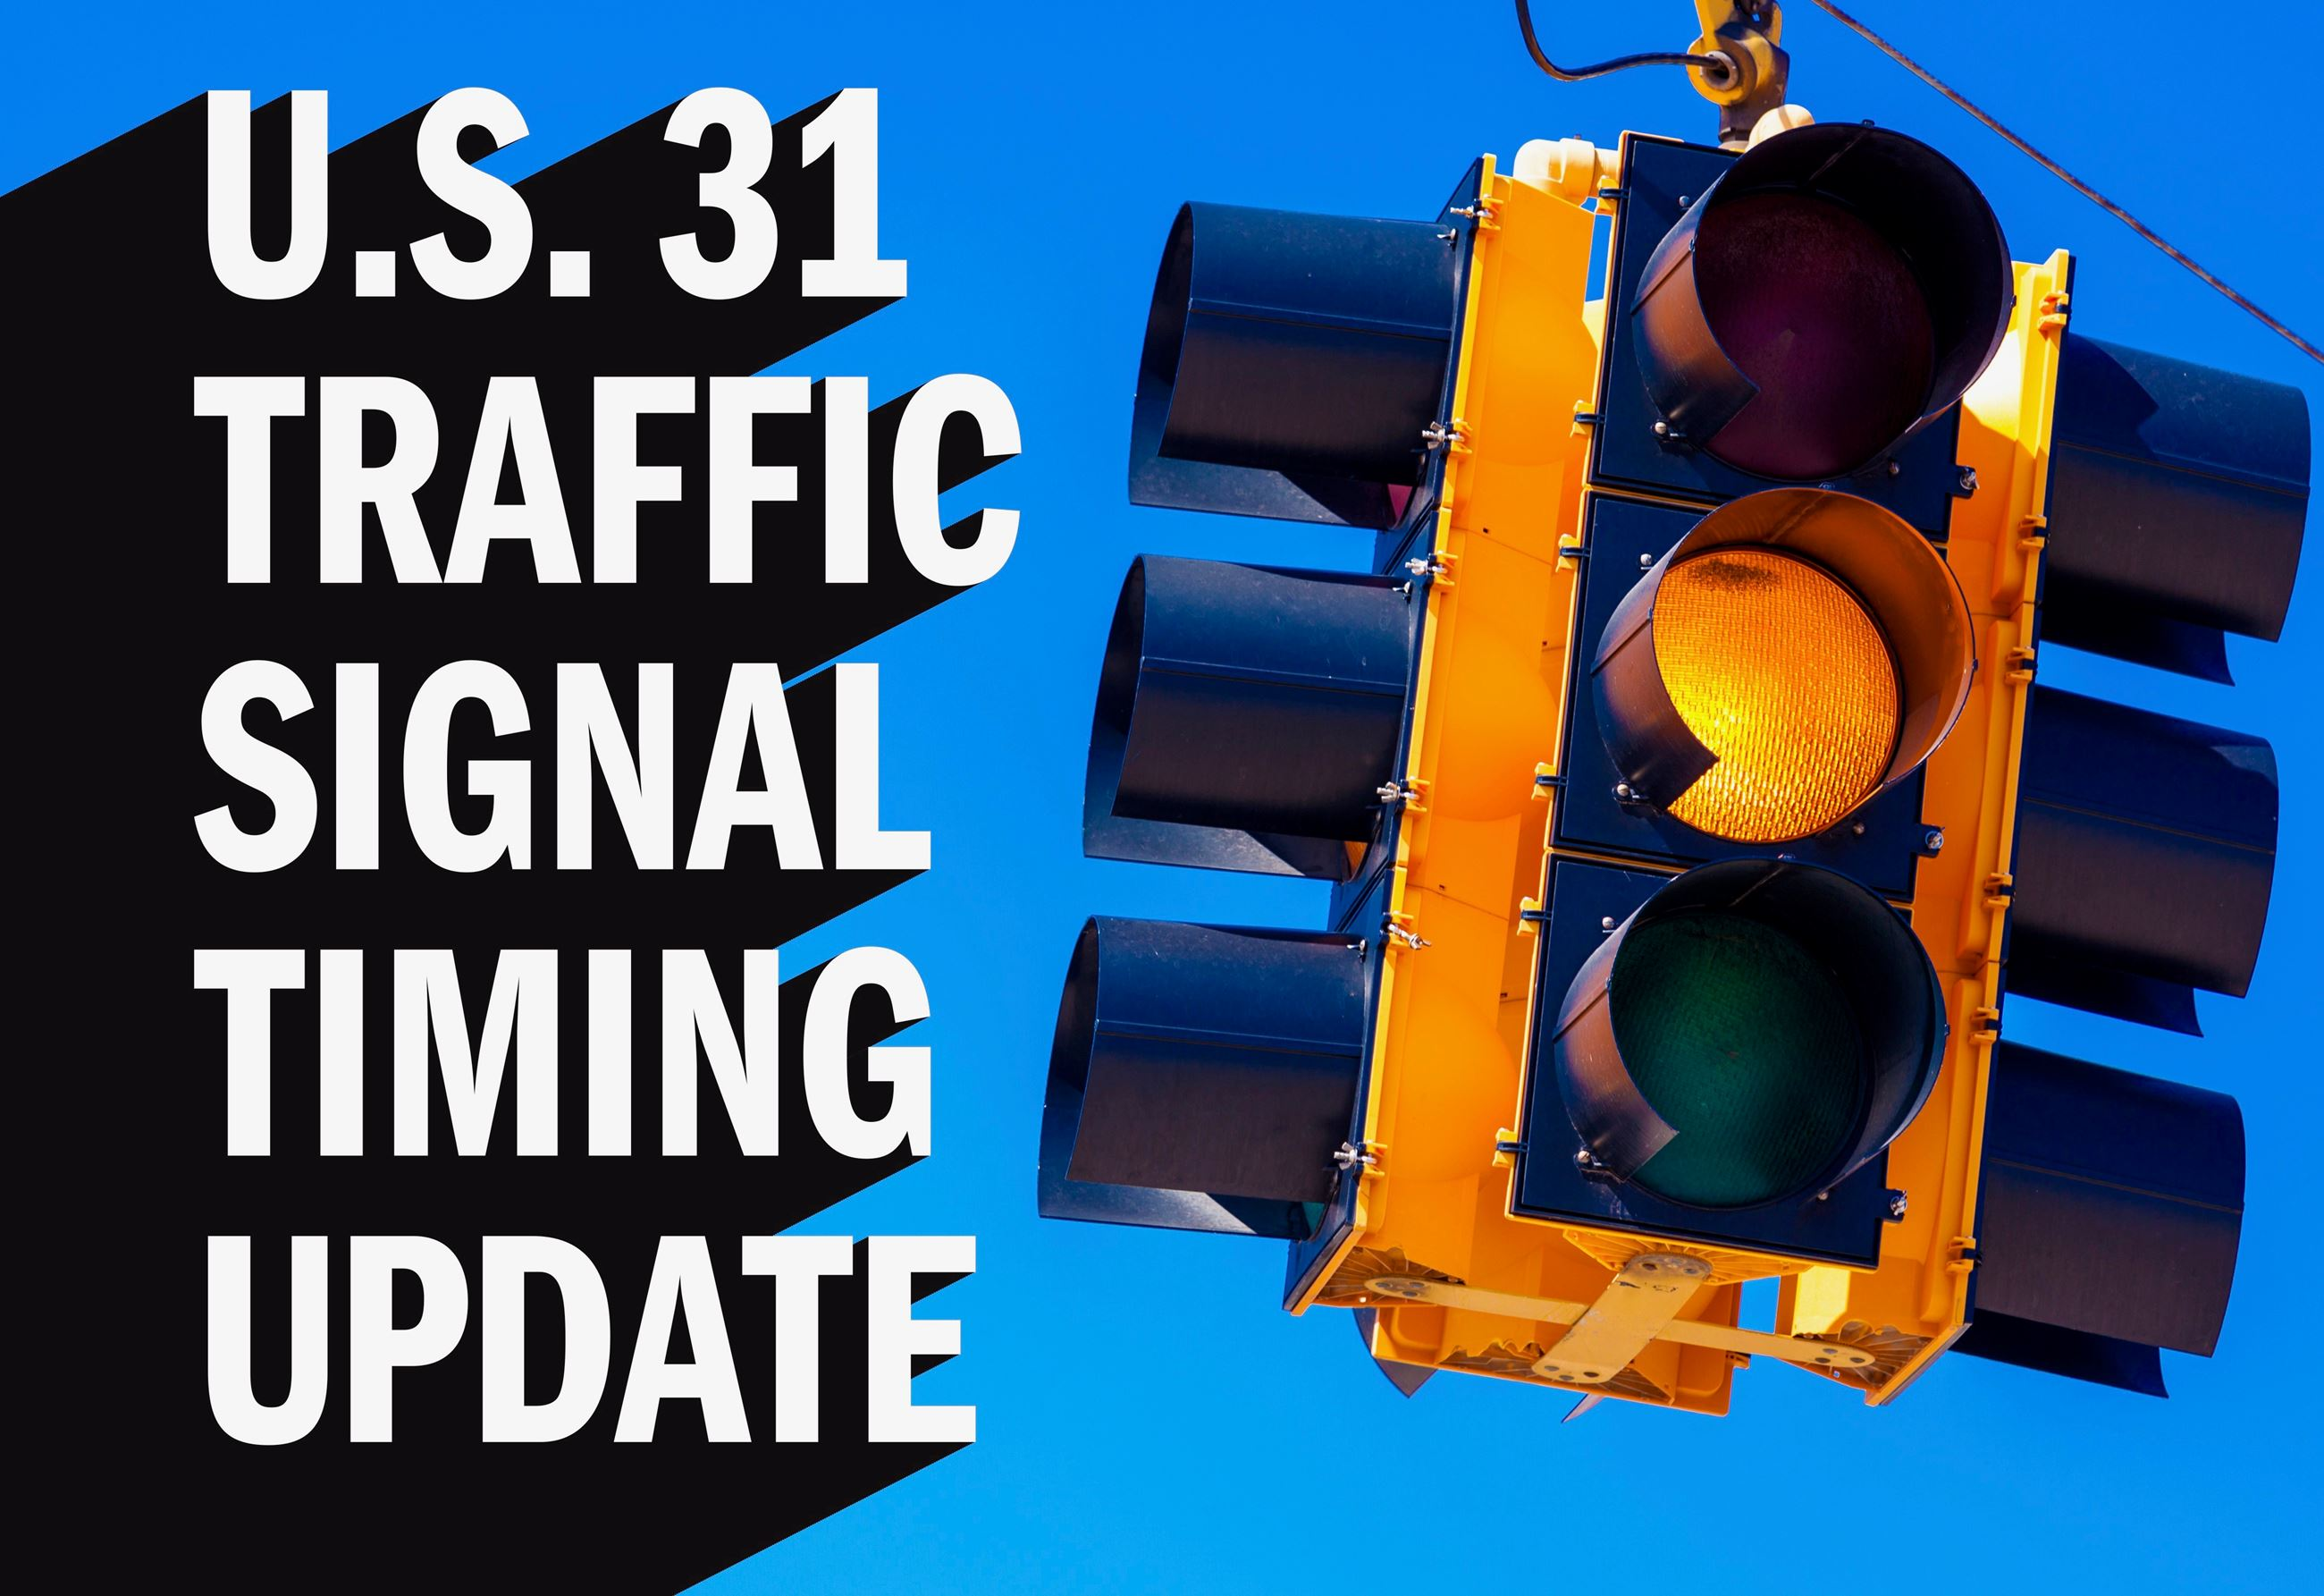 e4a874693c4 U.S. 31 Traffic Signal Timing Update